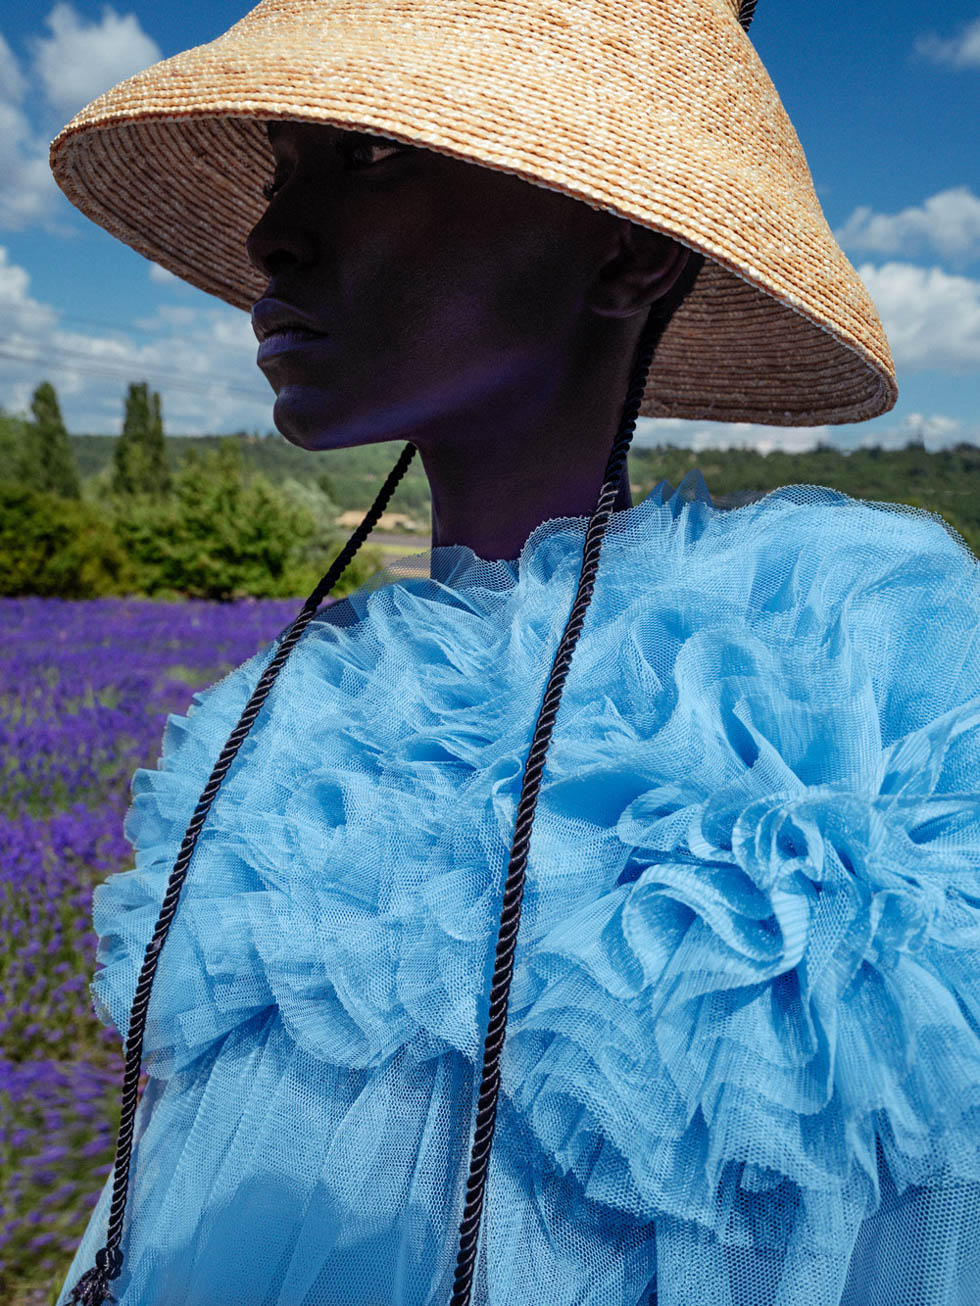 The countryside is the new black. Shot in the lavender fields of Avignon. This editorial for Vanidad needed to show the new freedom we were facing while showing the color and garment trends of the new season. Photography by Elena Iv-Skaya.